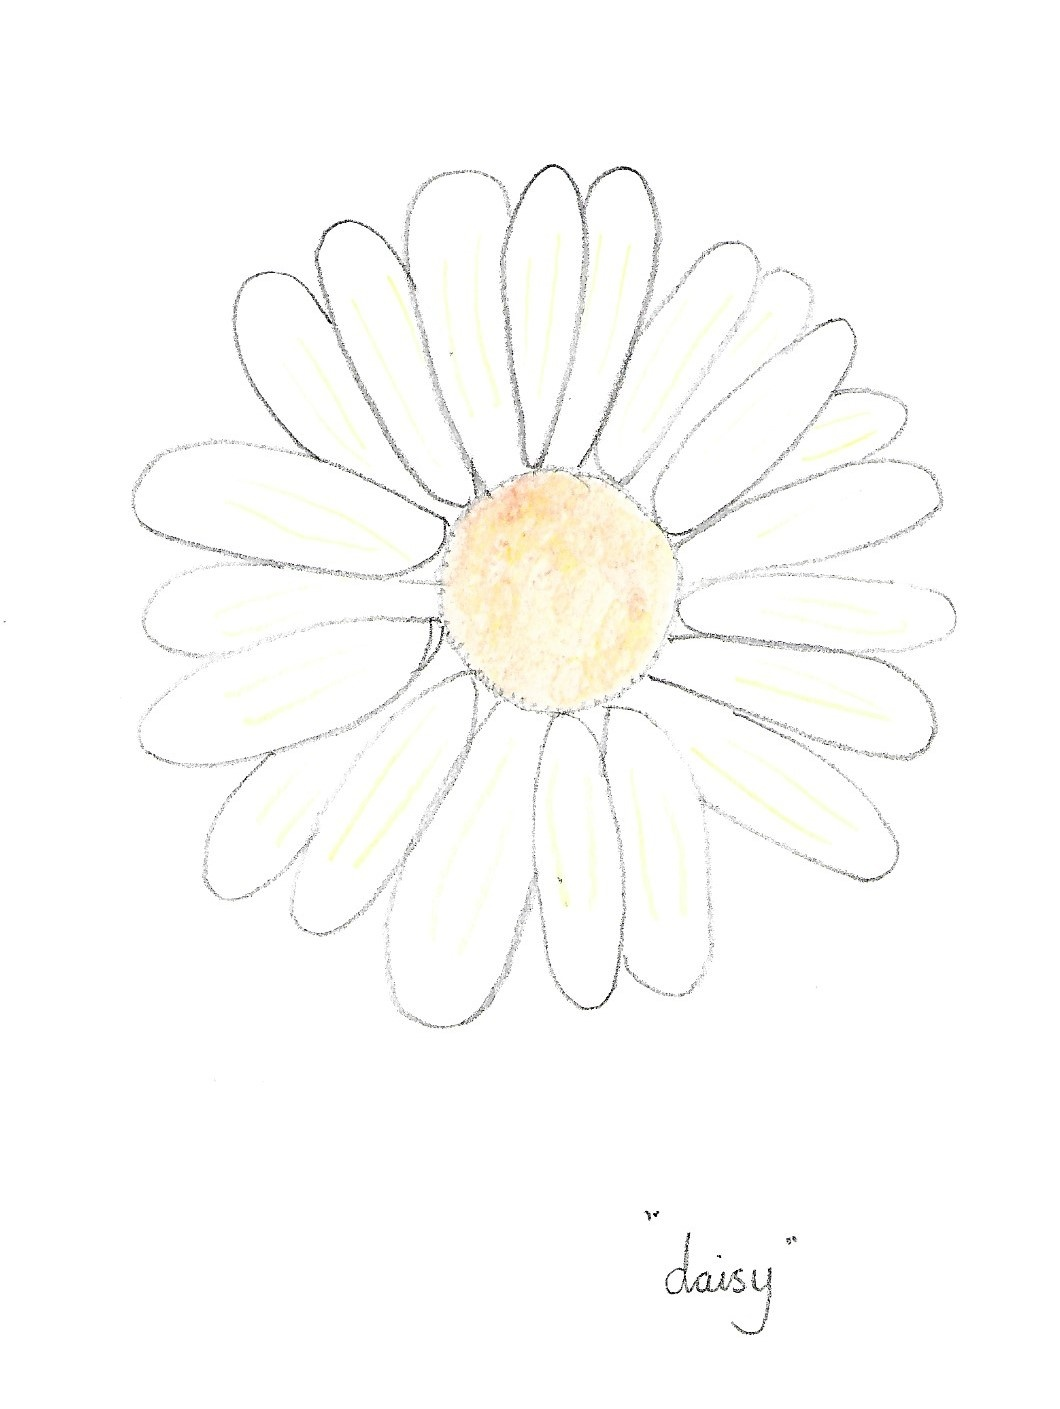 Daisy image for p 8&9